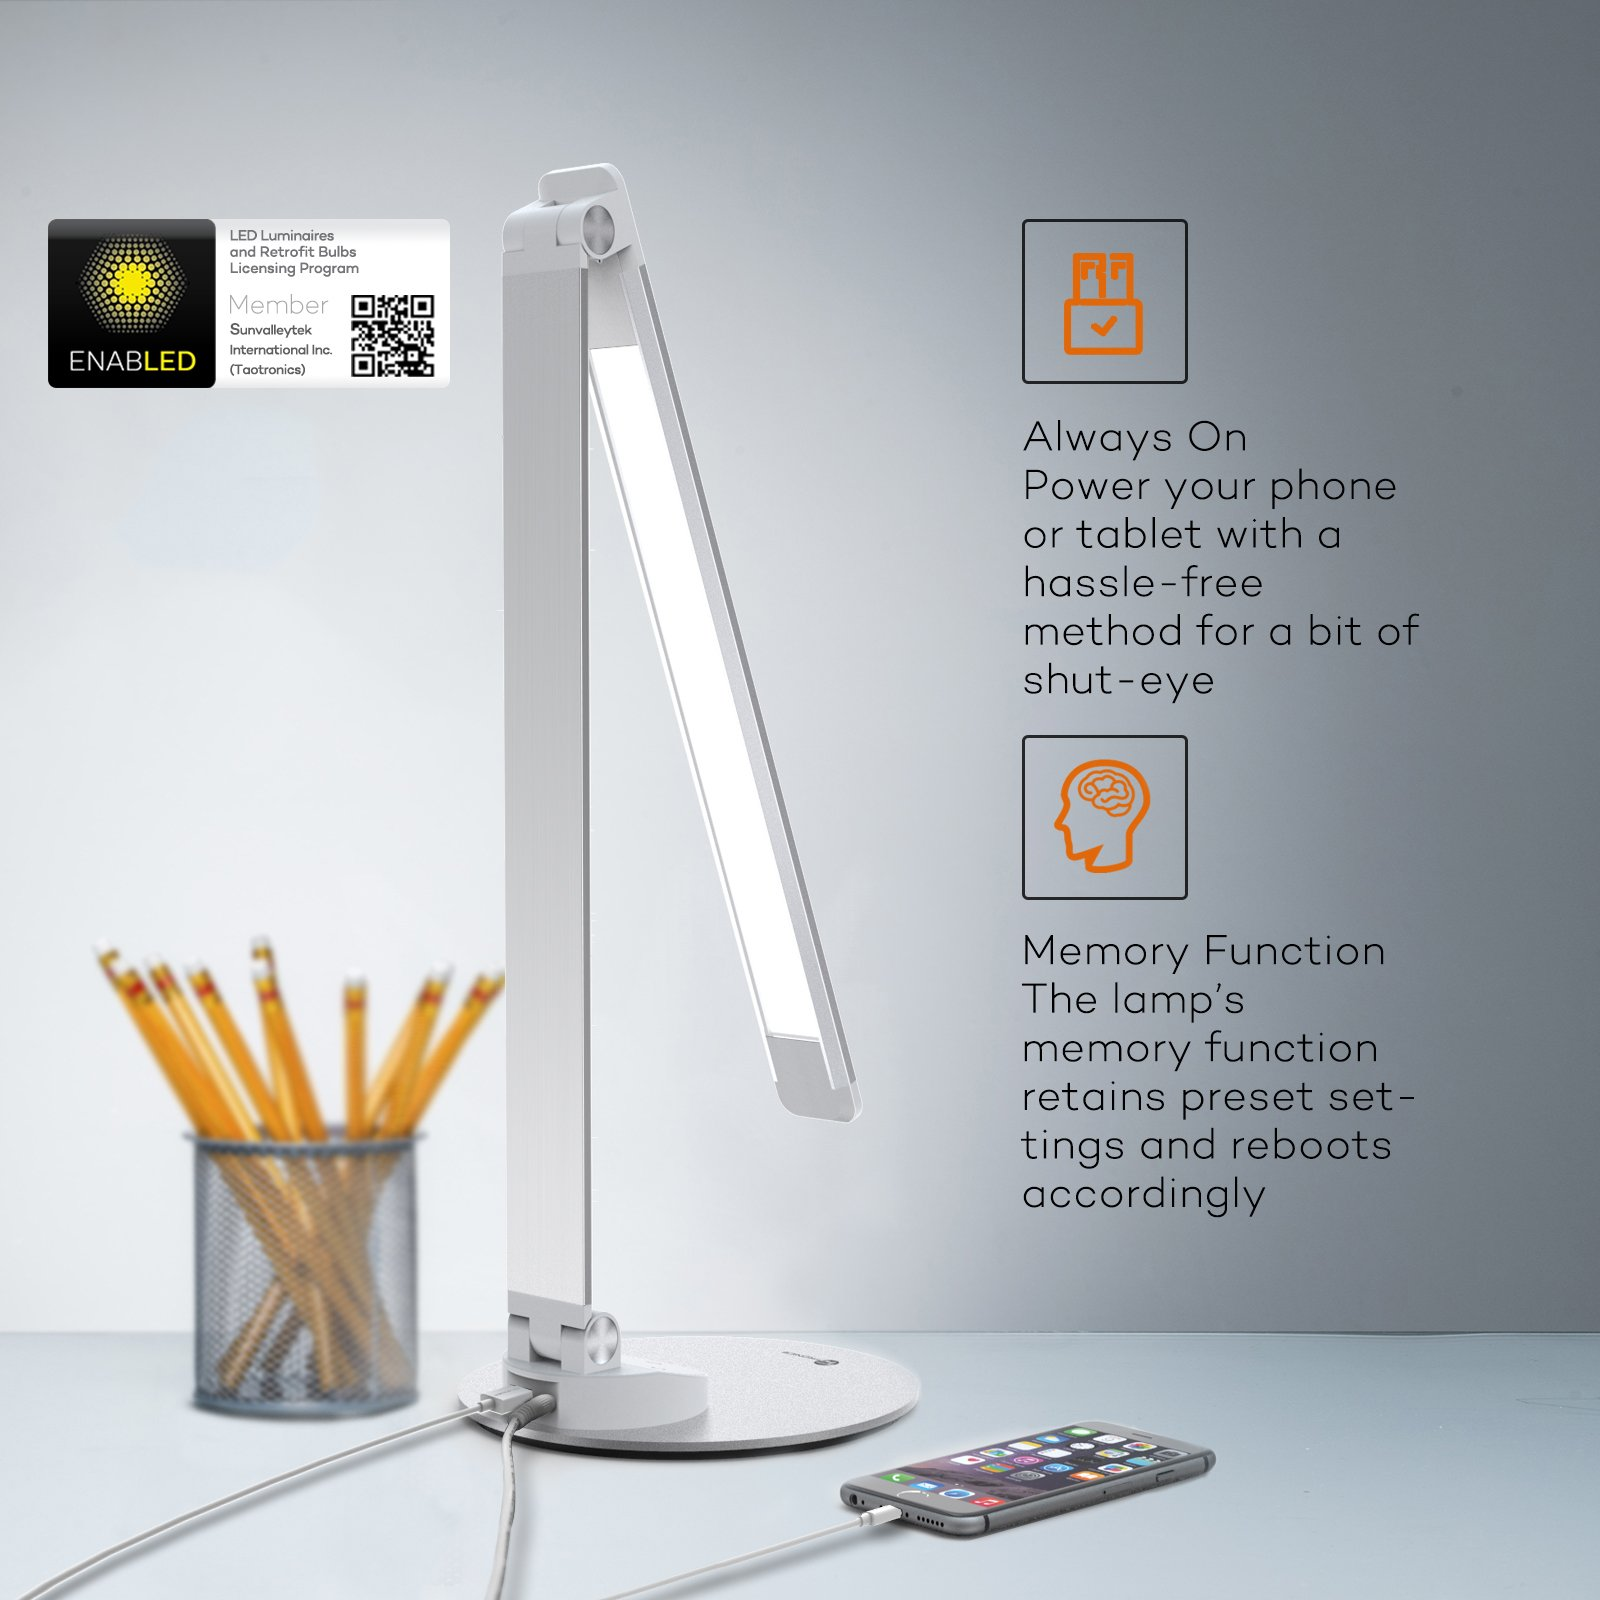 TaoTronics LED Desk Lamp with USB Charging Port, Eye- care Dimmable Lamp, 5 Color Temperatures with 5 Brightness Levels, Touch Control, Metal, Official Member of Philips EnabLED Licensing Program by TaoTronics (Image #5)